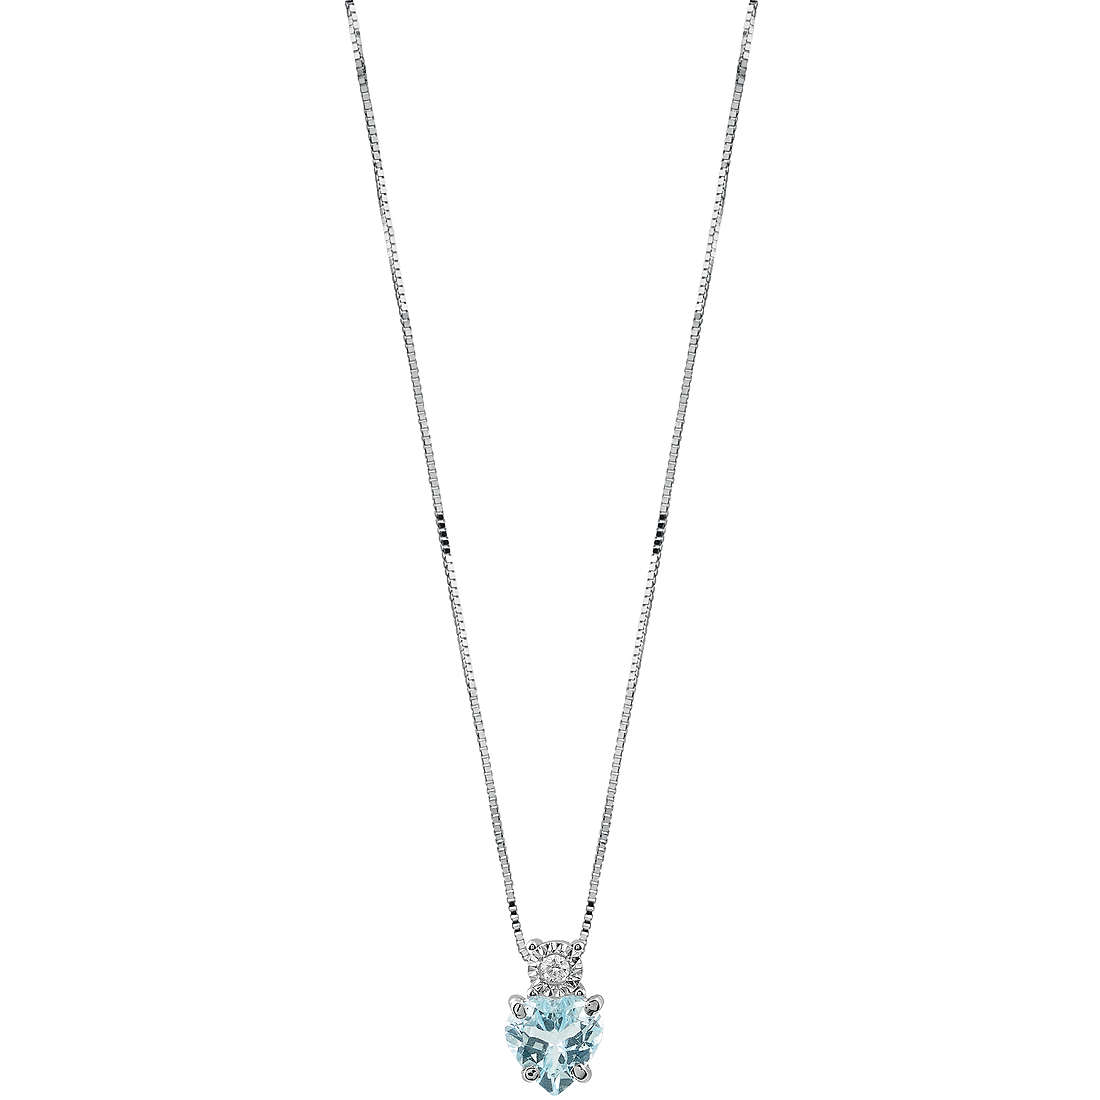 Bliss ladies Necklace In White Gold With Diamond and Aquamarine 20086600